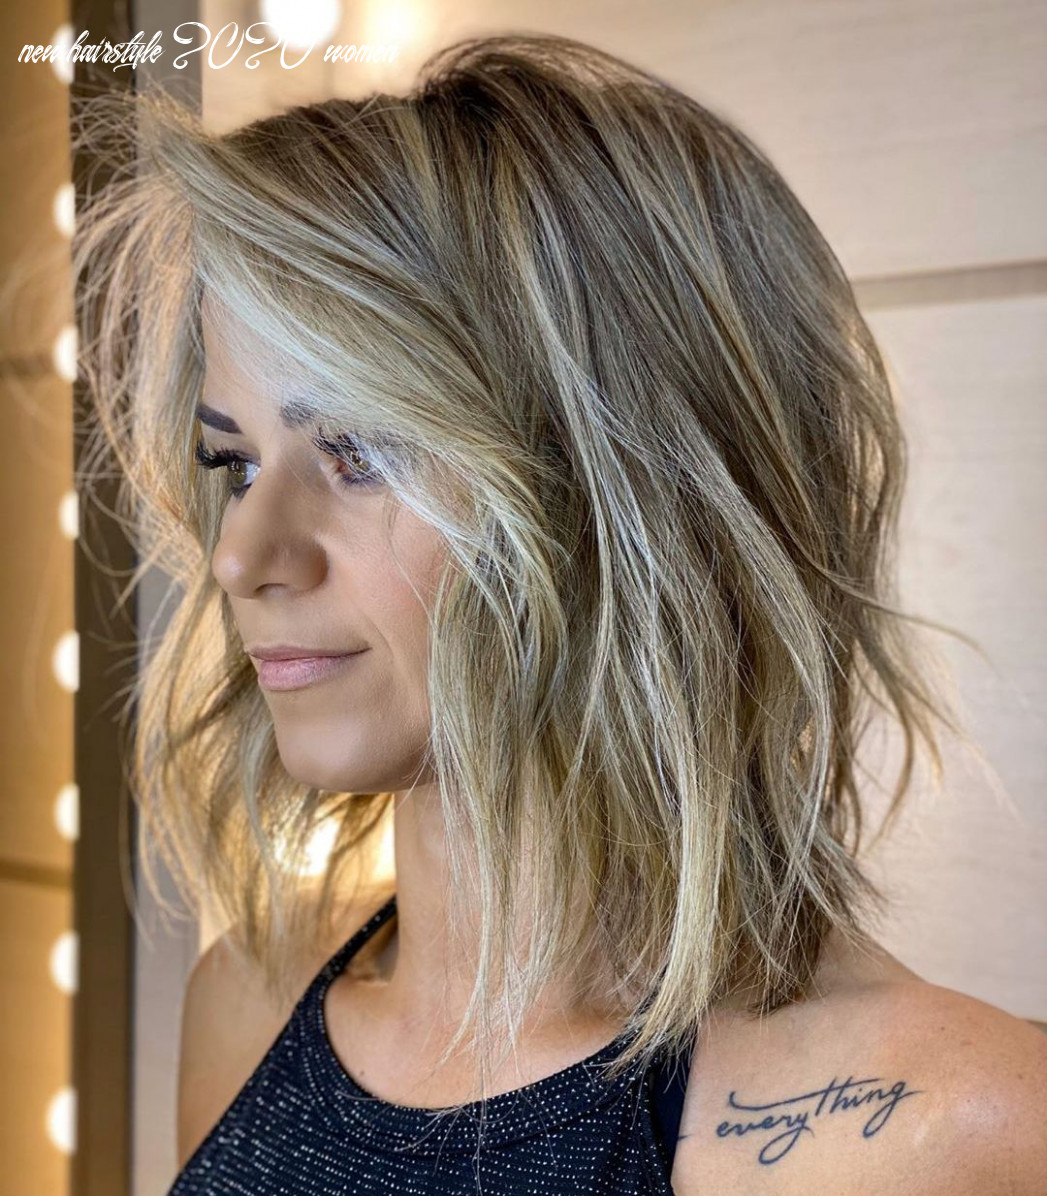 8 newest haircut ideas and haircut trends for 8 hair adviser new hairstyle 2020 women